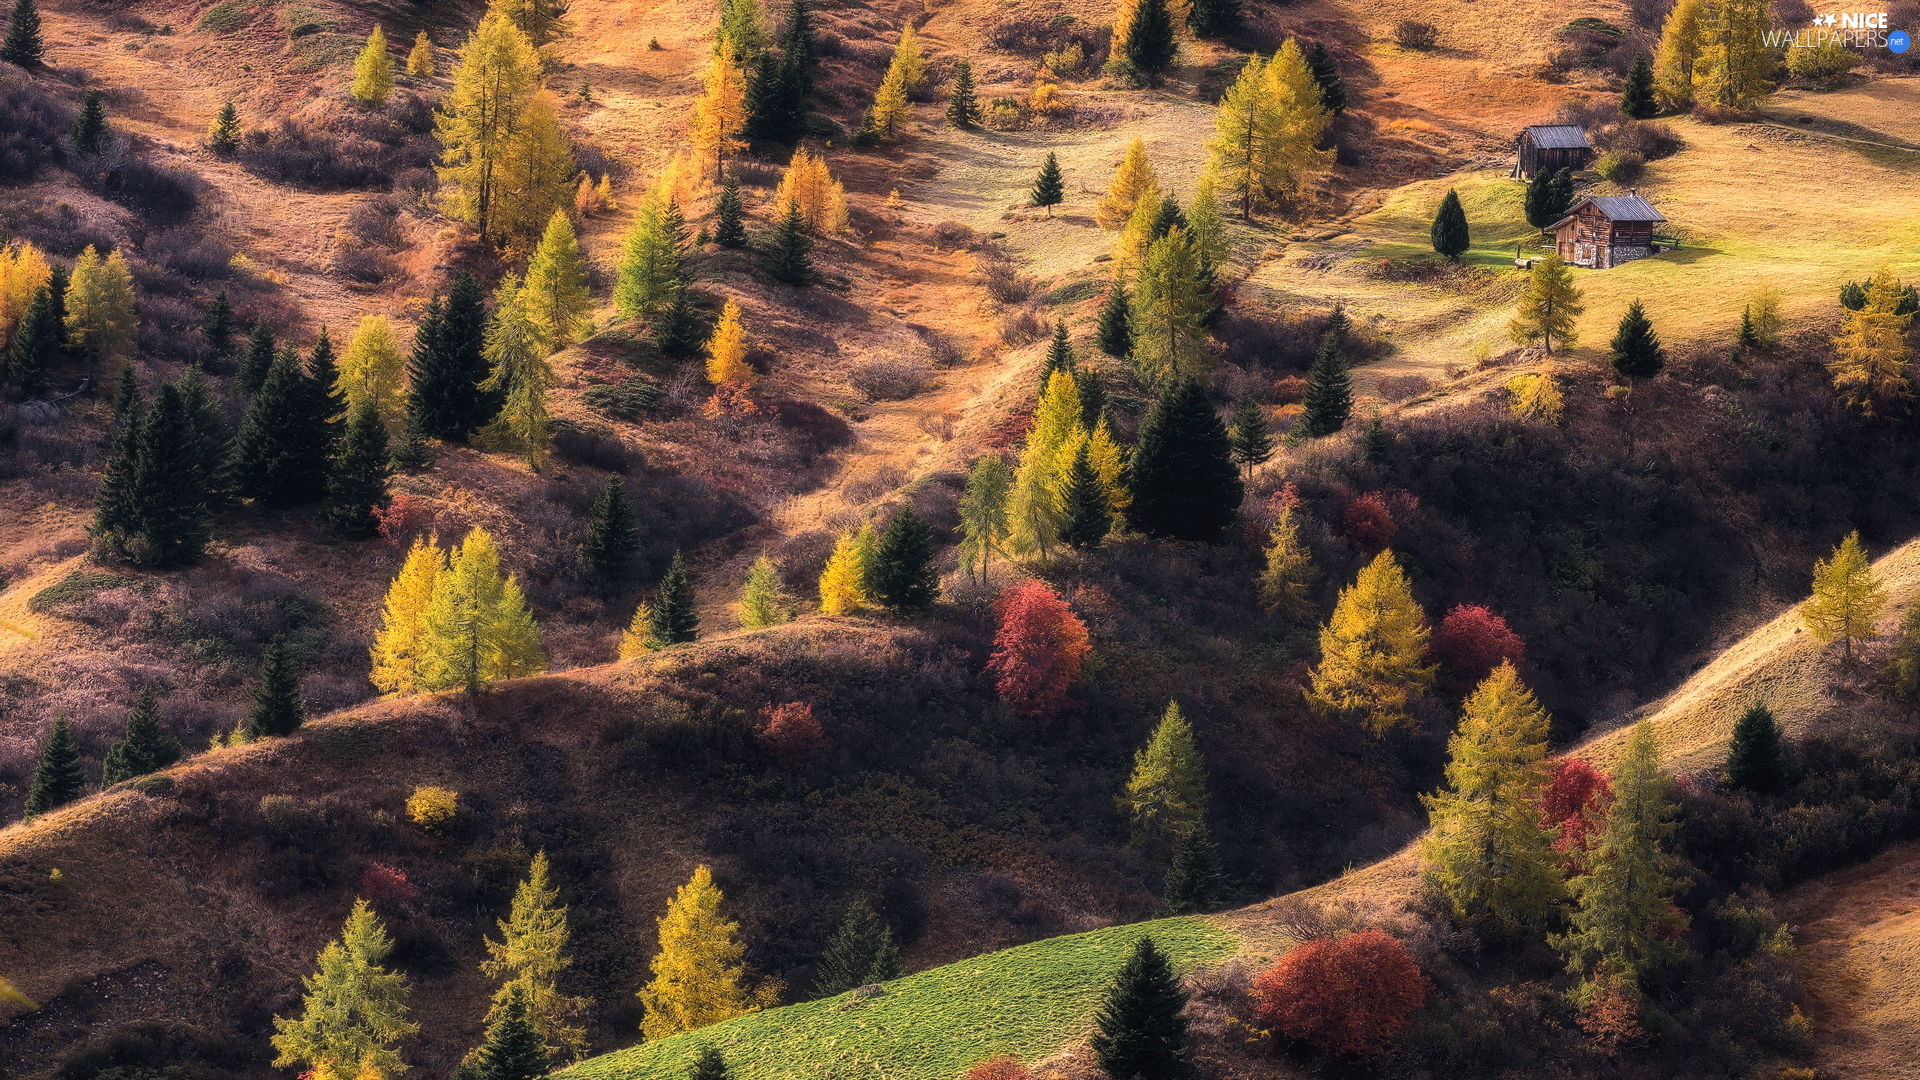 trees, autumn, Houses, hills, viewes, color